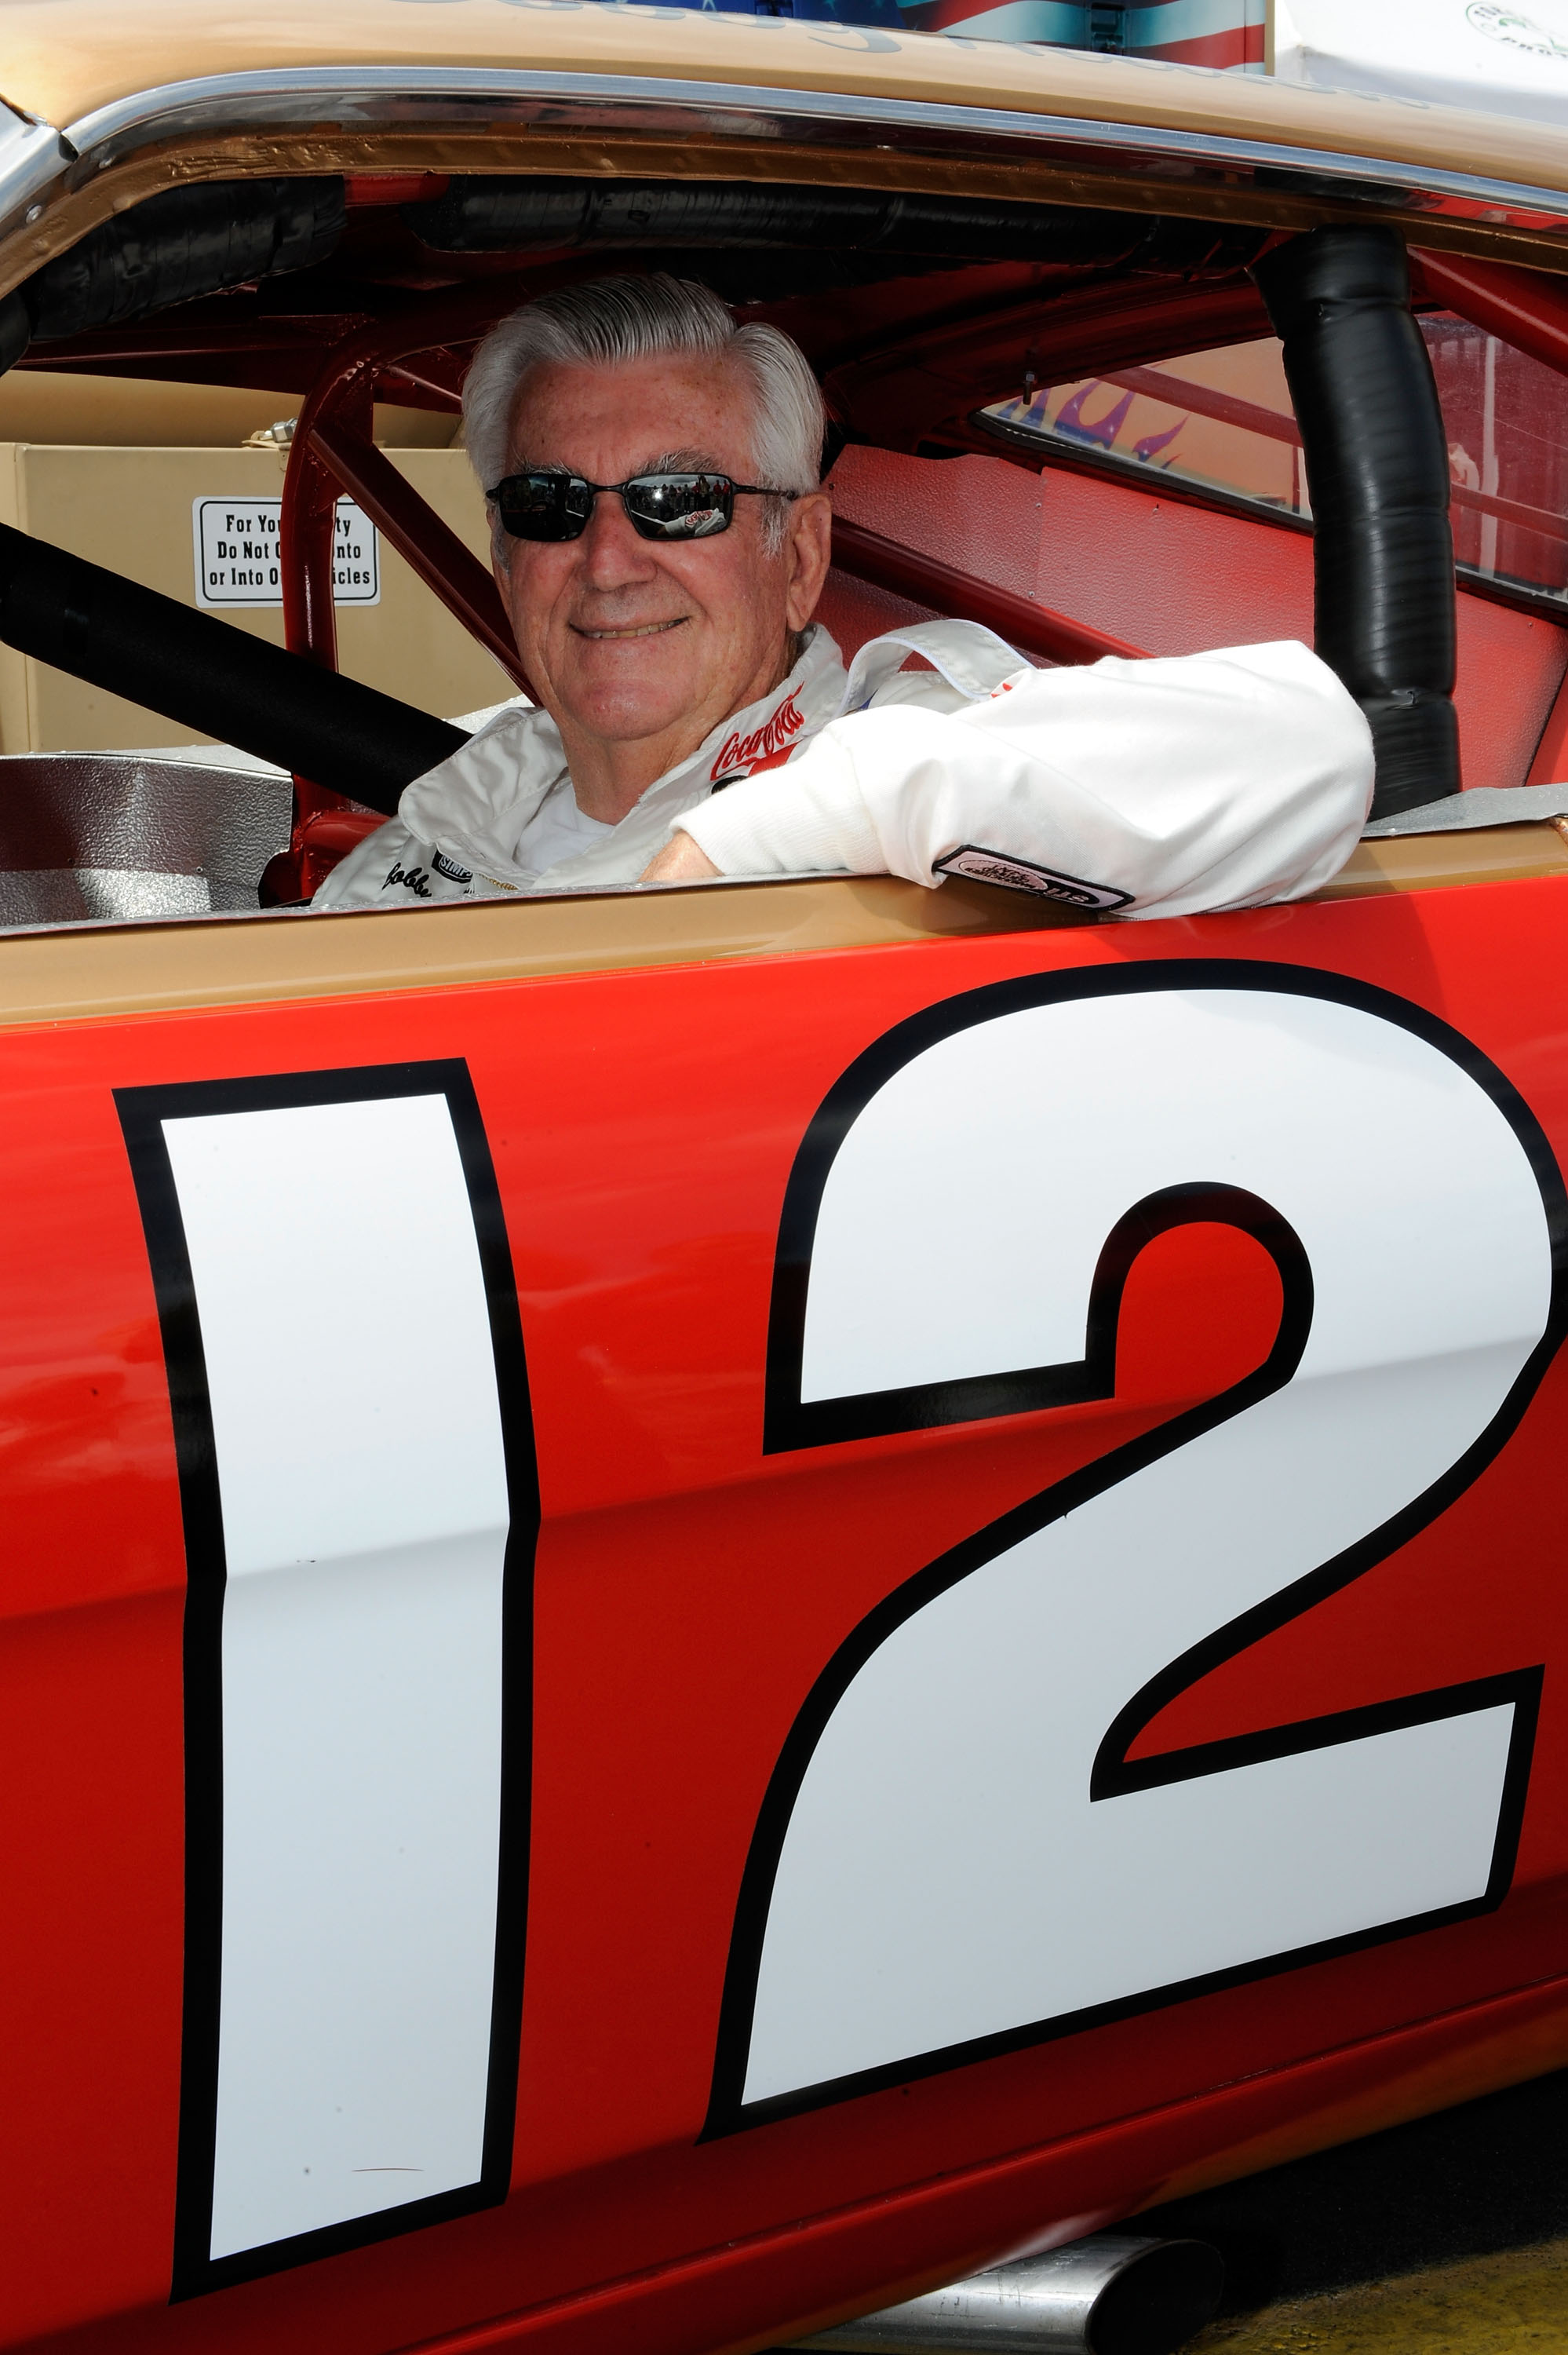 CONCORD, NC - MAY 24:  NASCAR legend Bobby Allison poses in the #12 Car in the garage area prior to the NASCAR Sprint Cup Series Coca-Cola 600 on May 24, 2009 at Lowe's Motor Speedway in Concord, North Carolina.  (Photo by John Harrelson/Getty Images)